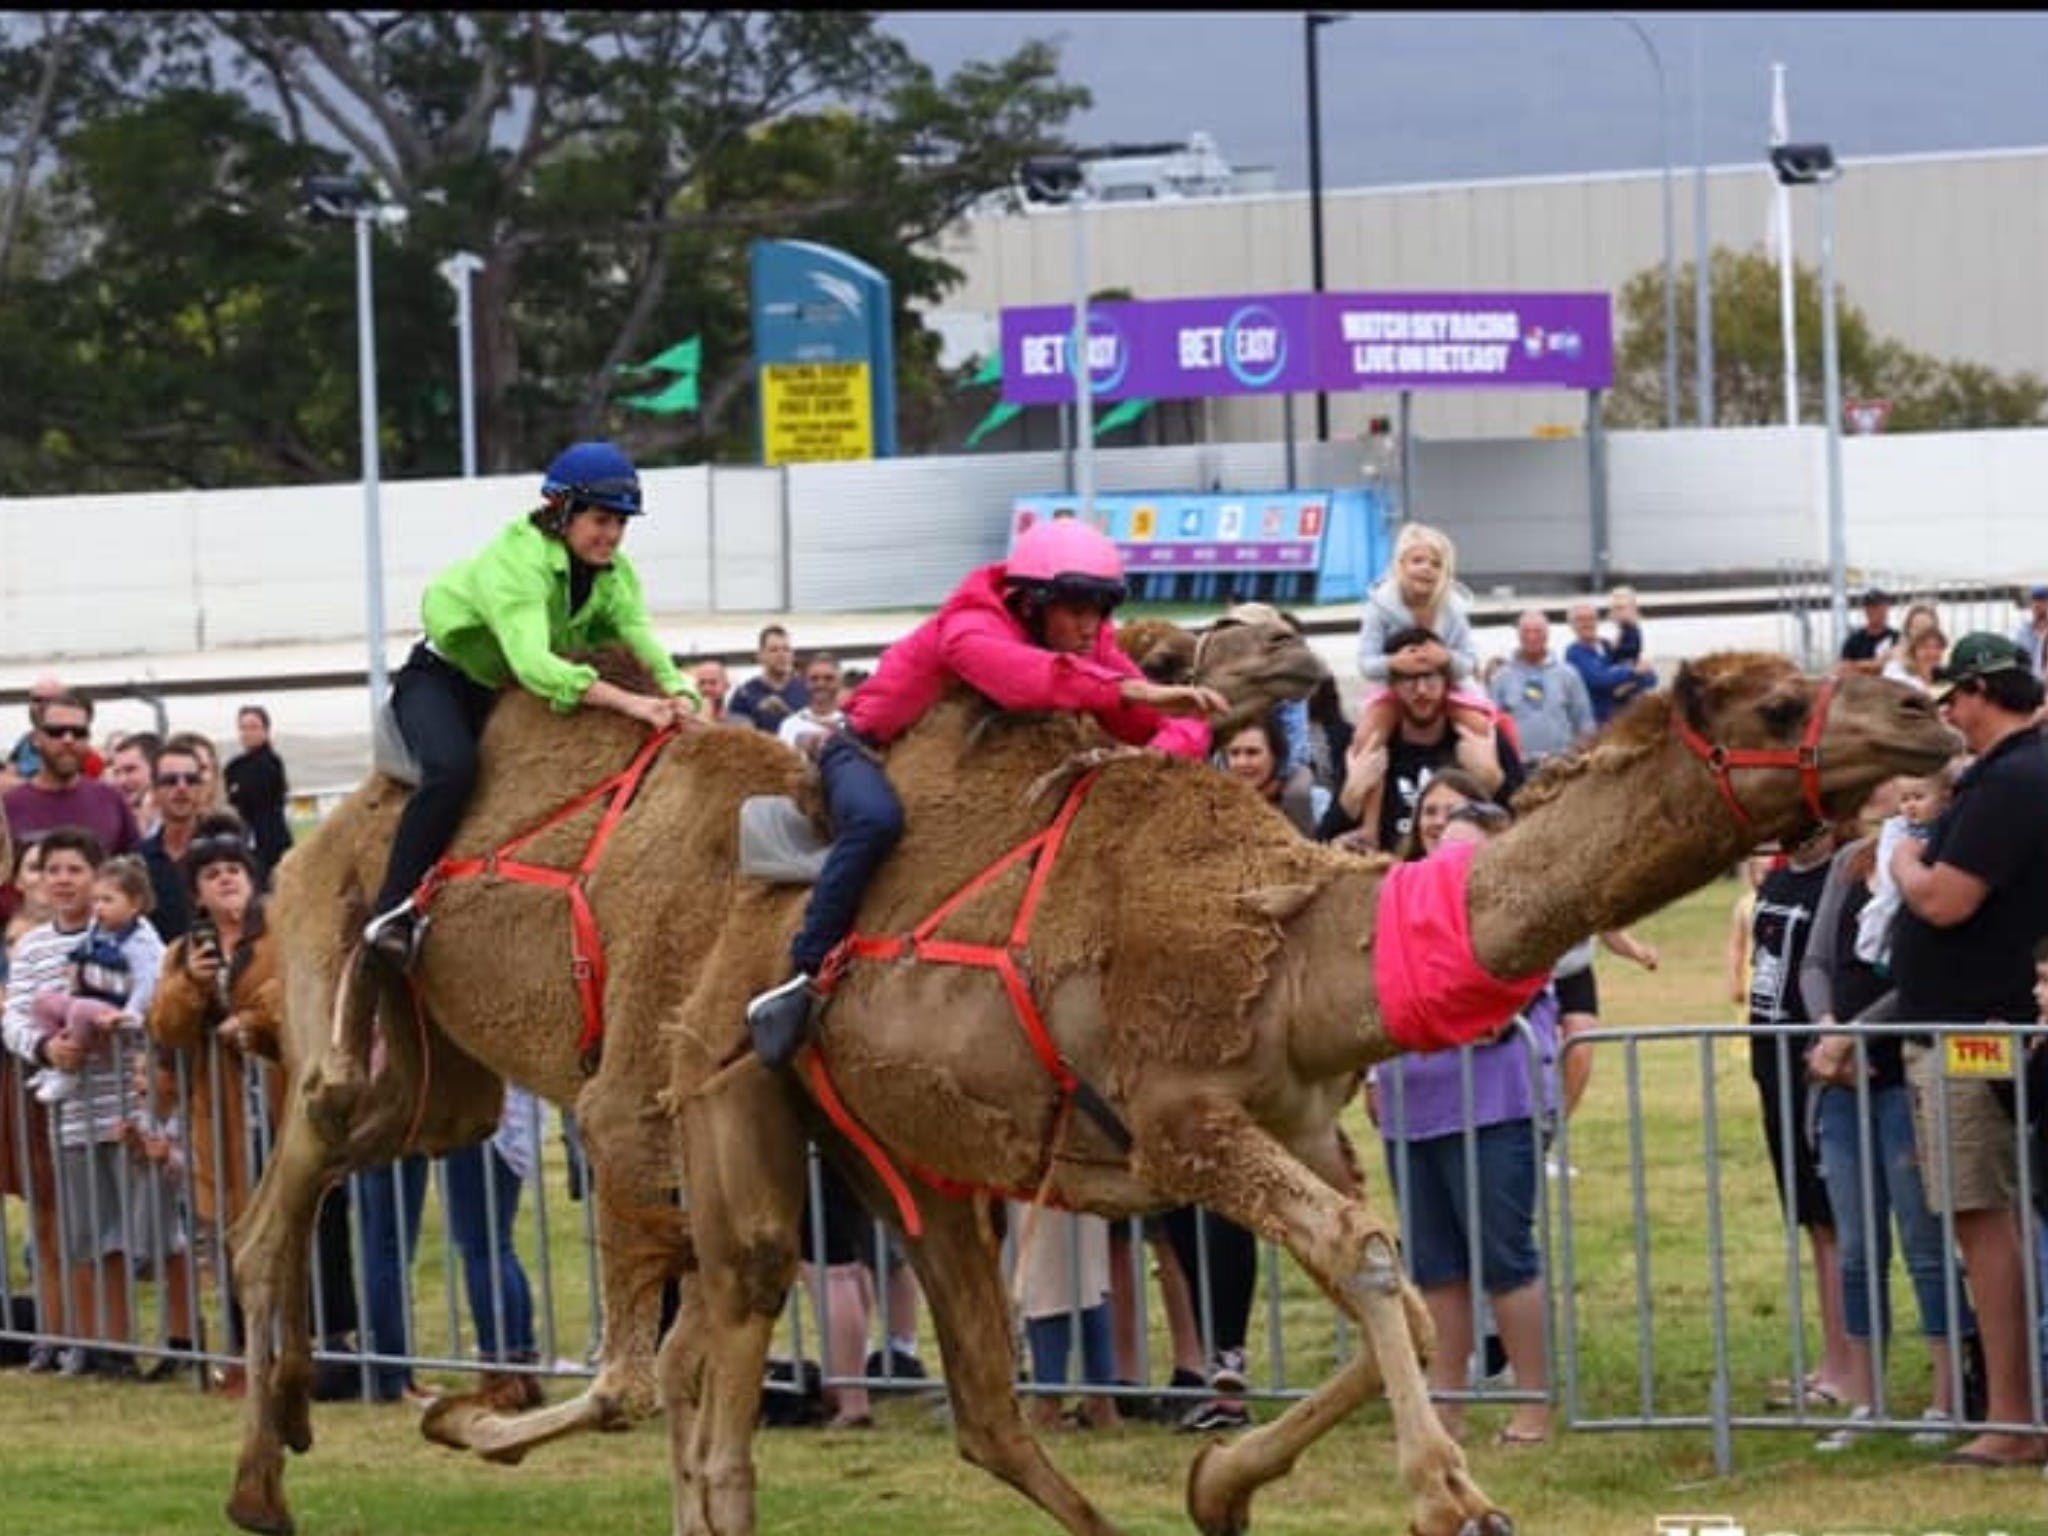 Camel Races at Gosford Showgrounds - Pubs Perth